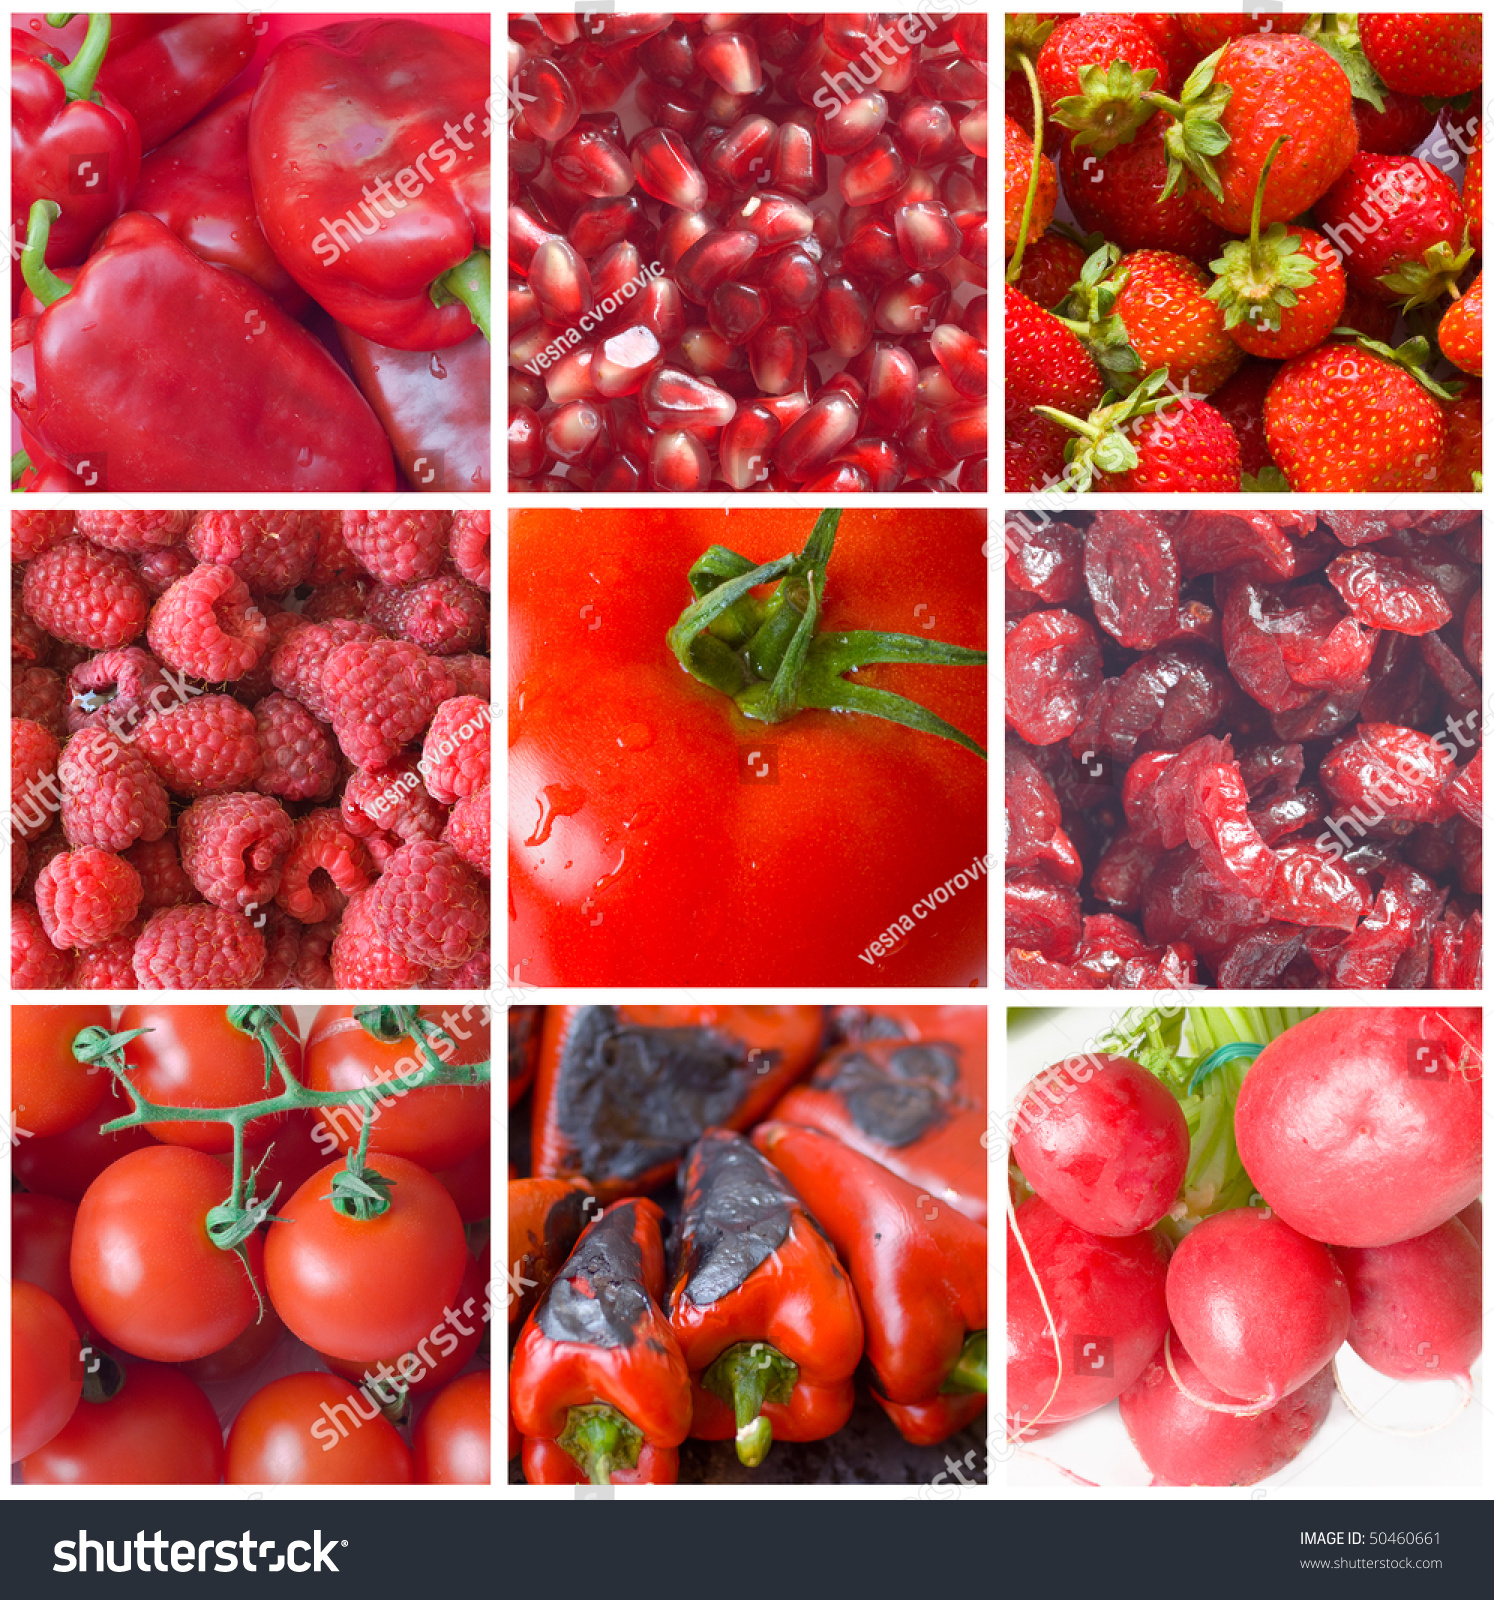 Red Fruits Vegetables Stock Photo 50460661 - Shutterstock